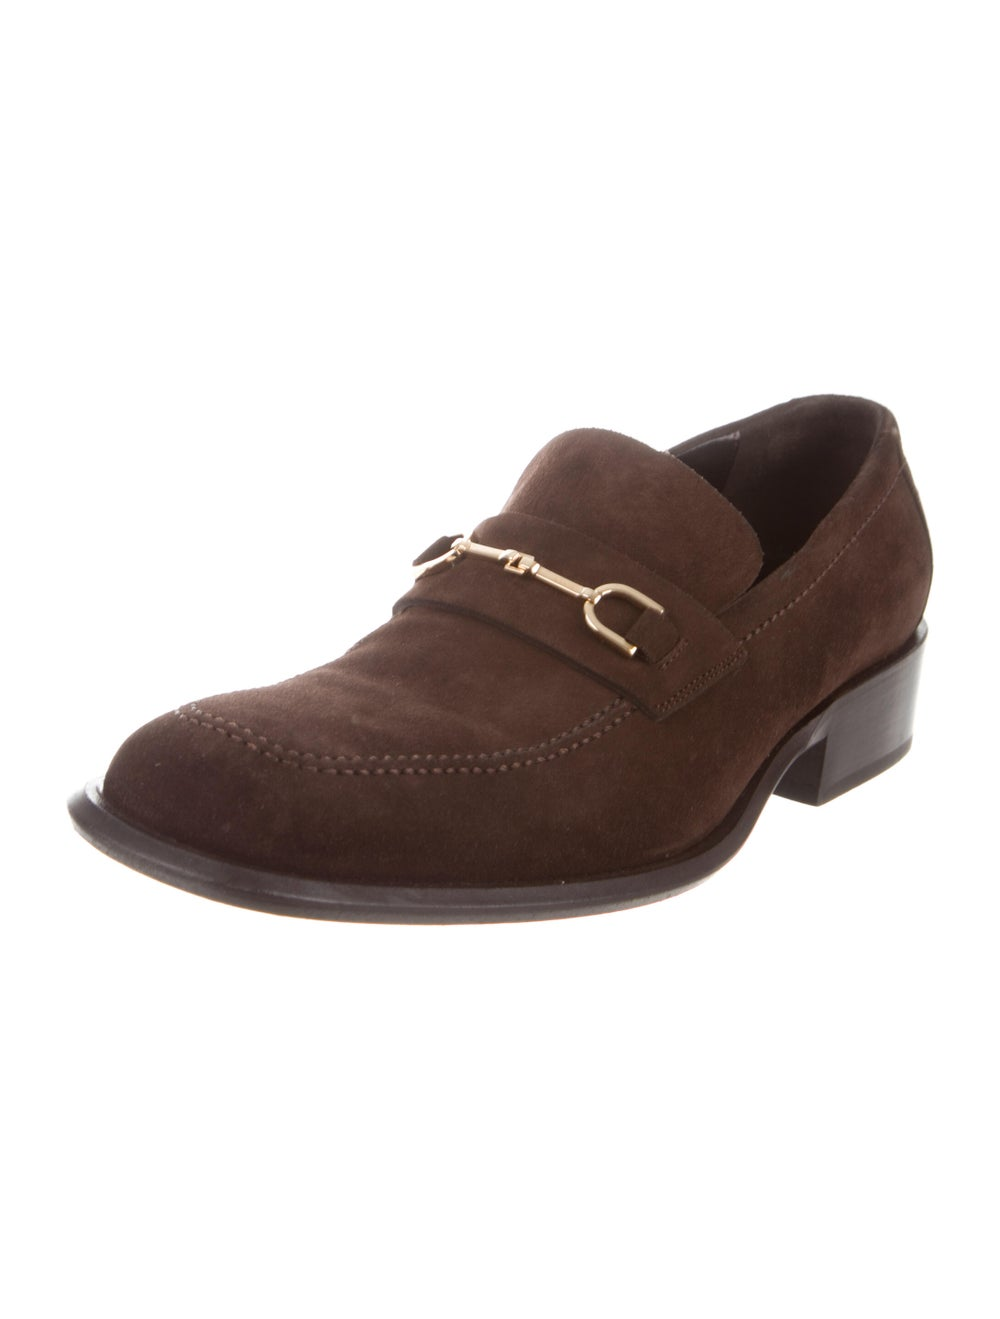 Gucci Suede Dress Loafers Brown - image 2